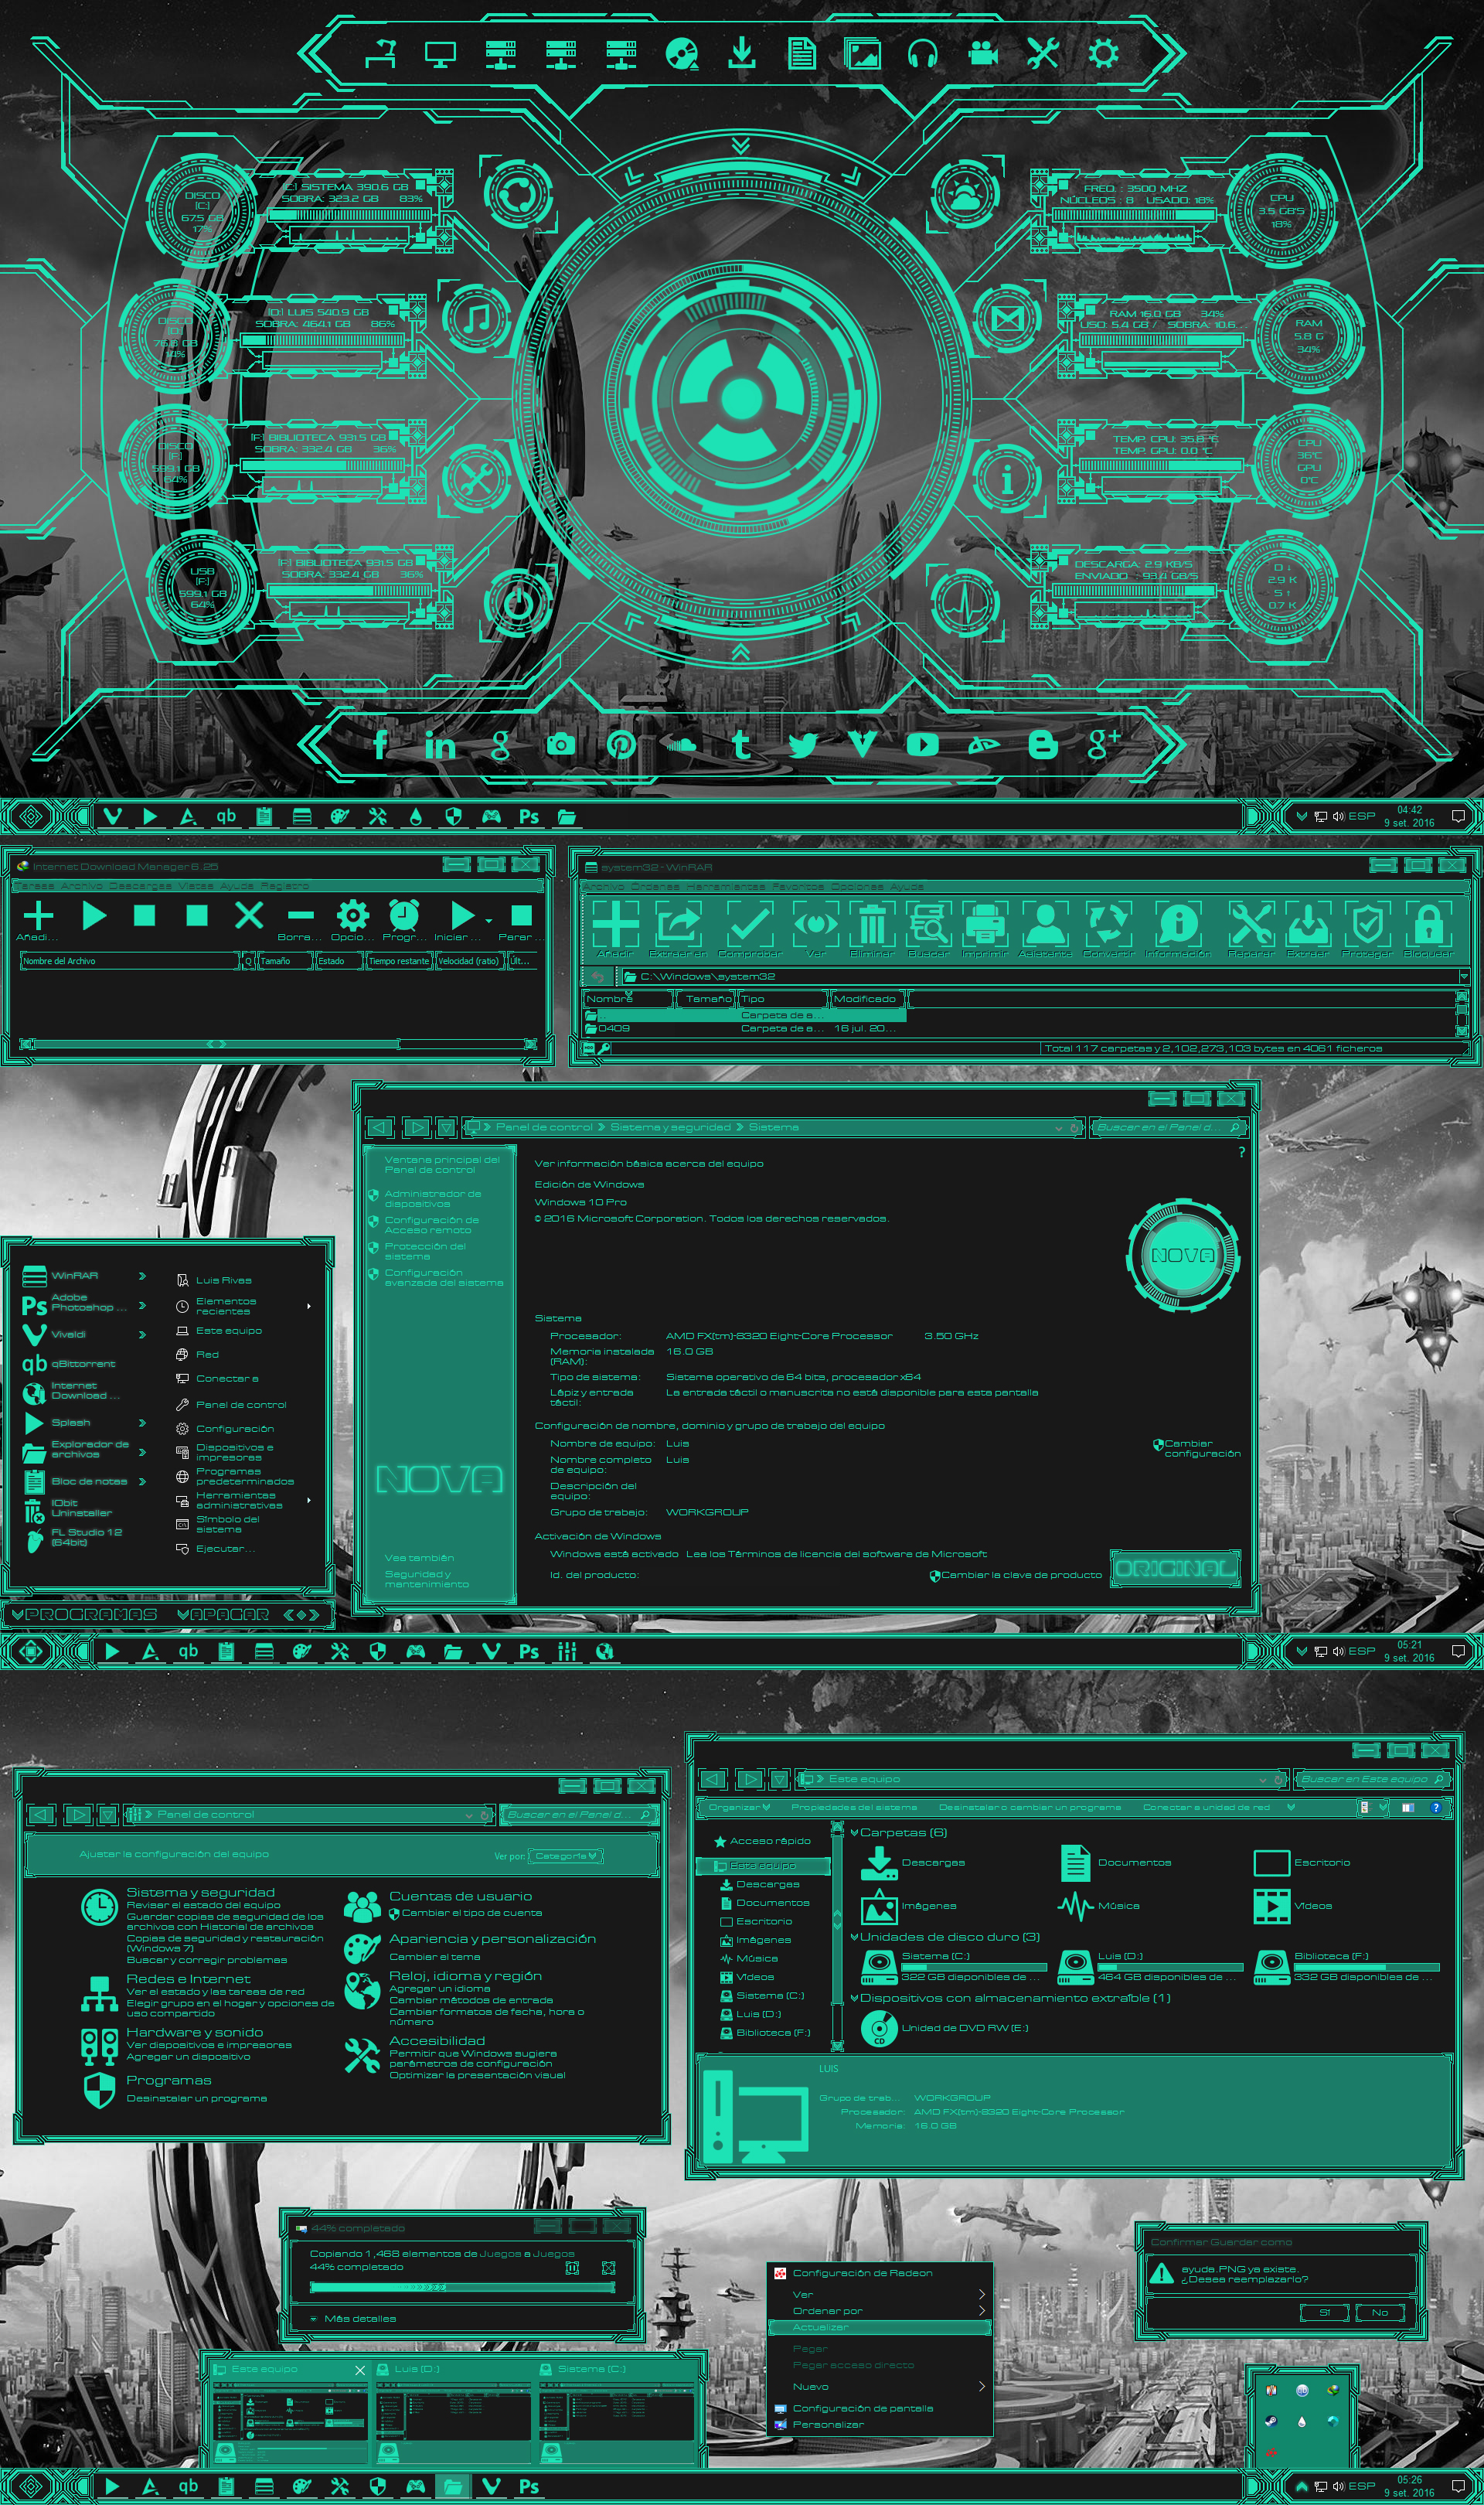 Nova Theme For Win10 Version 1607 (RS1) By Agelyk On